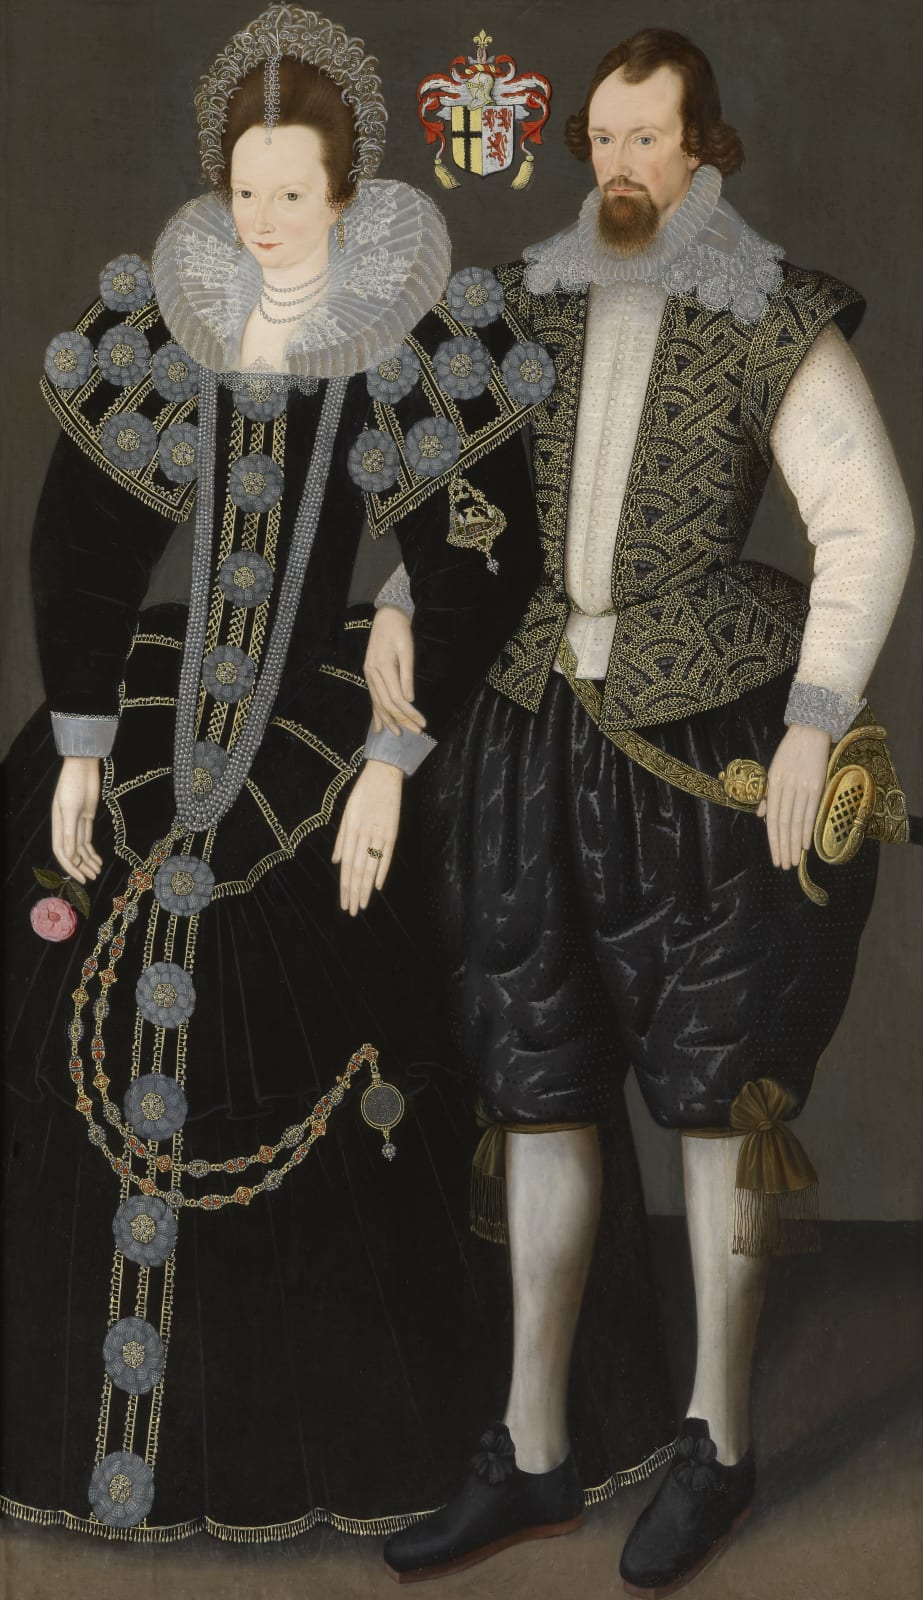 Sir Reginald Mohun, 1st Bt. of Hall and Boconnoc (c.1564 – 1639) and his wife, Dorothy Chudleigh of Ashton, Devon